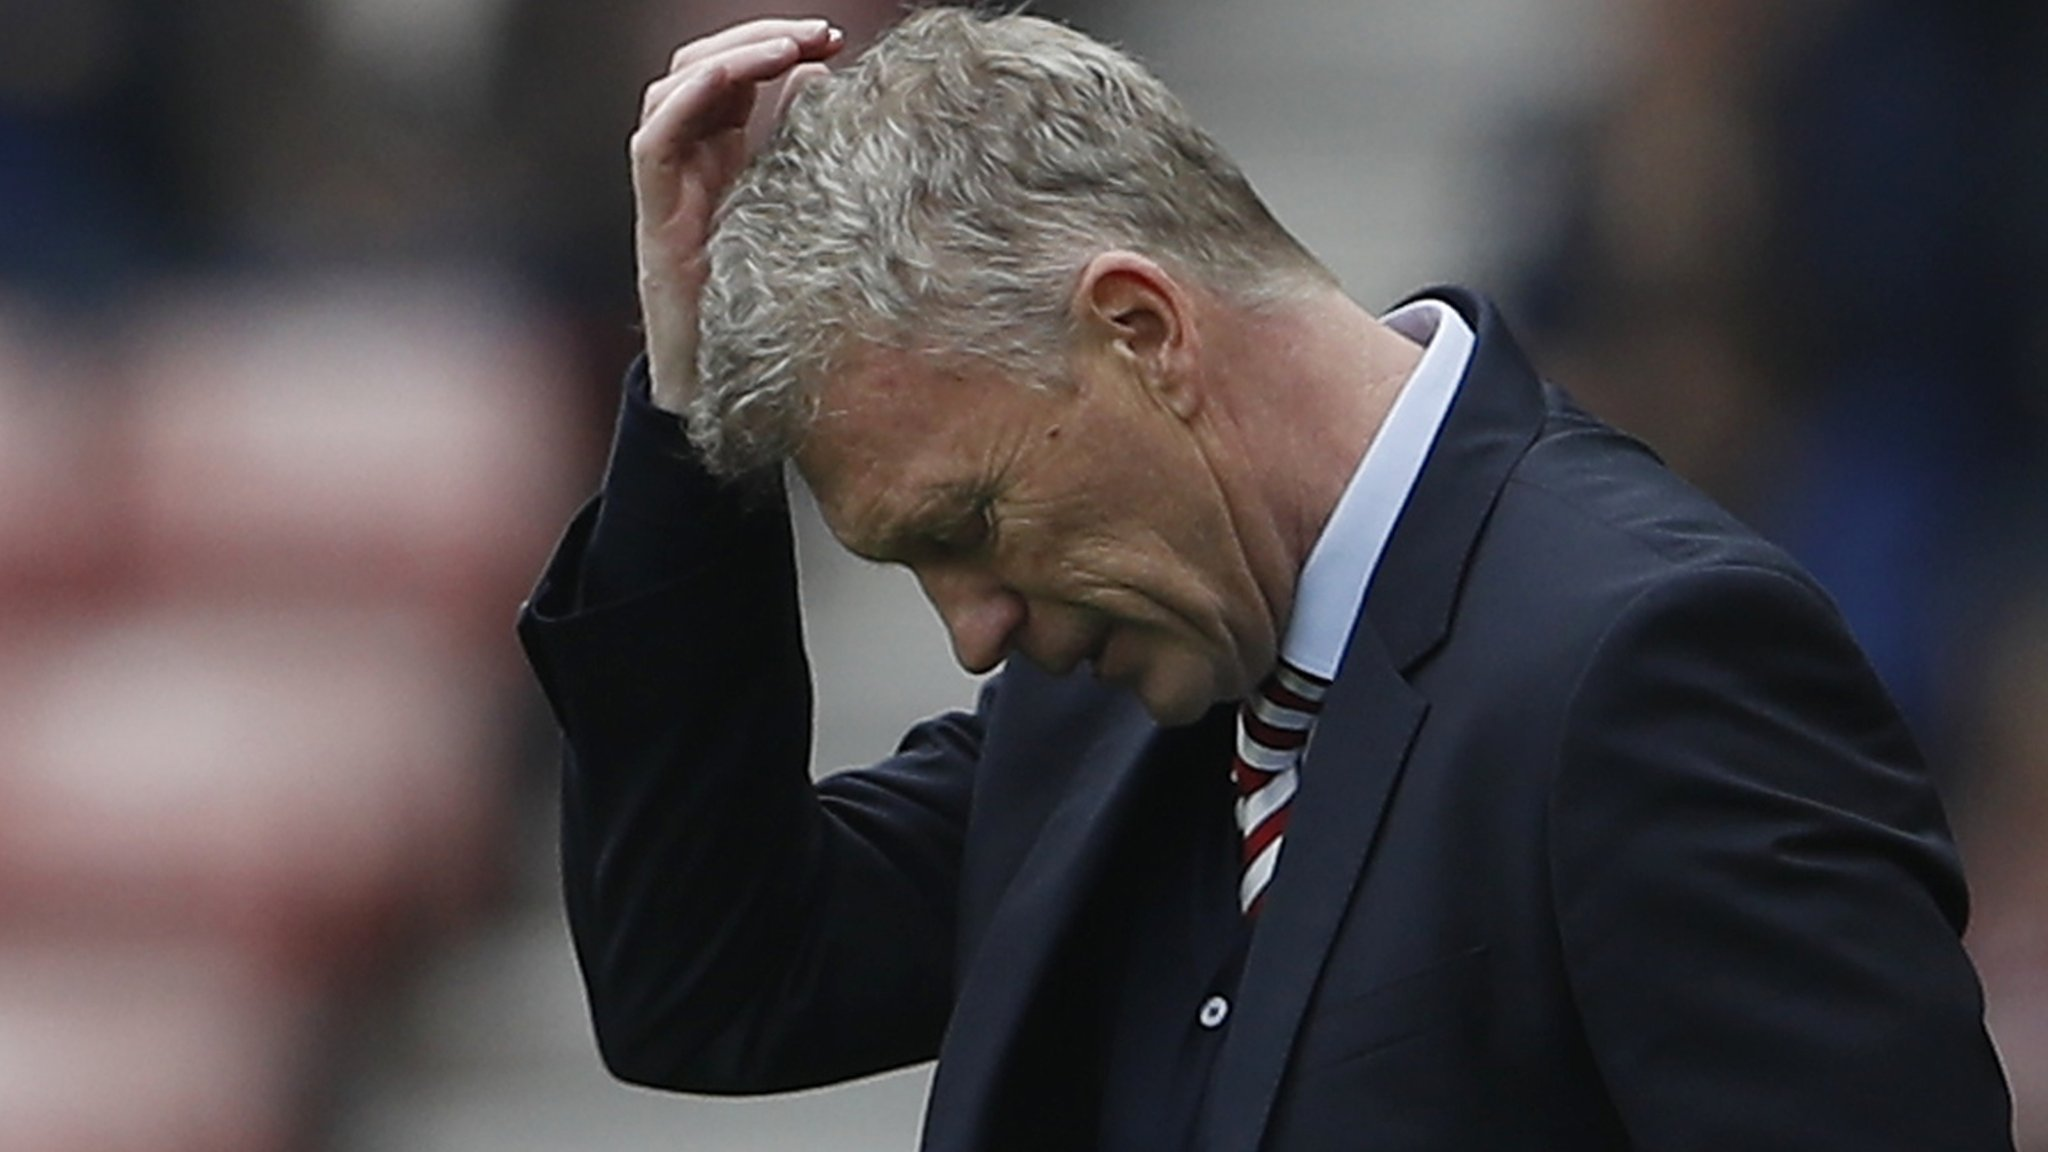 'World-weary, worn-down & damaged goods' What next for Moyes?